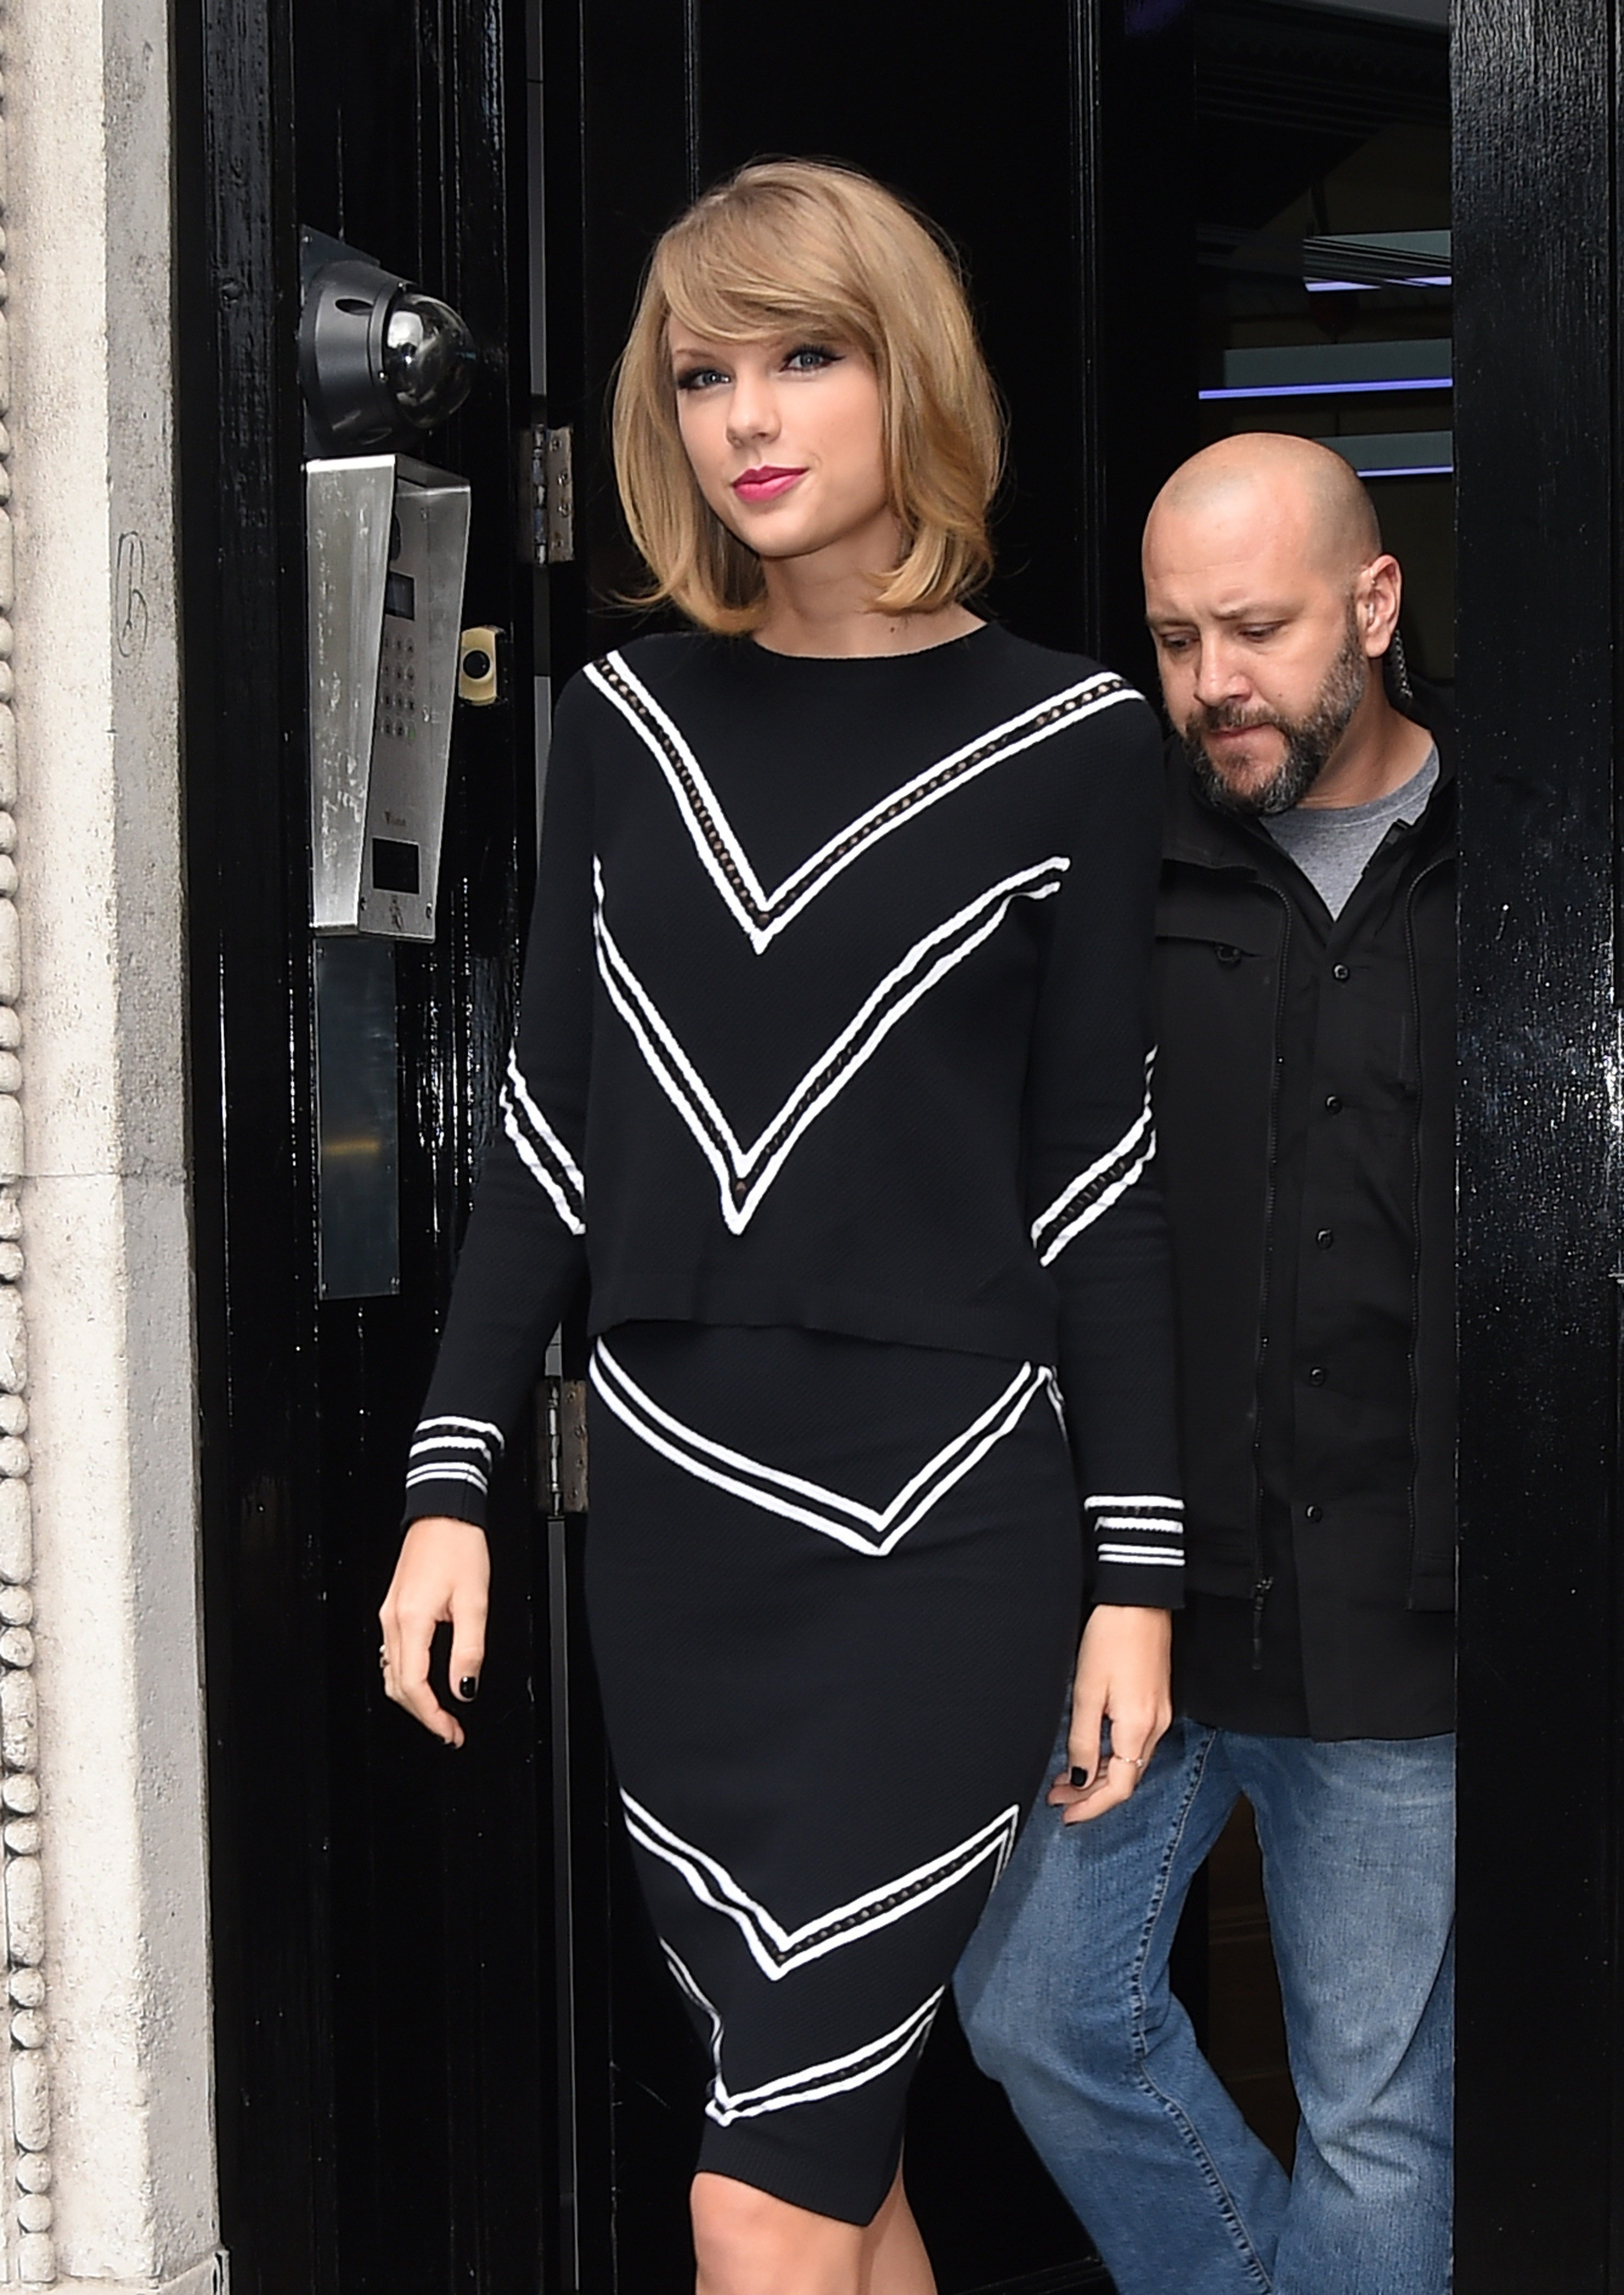 http://taylorpictures.net/albums/candids/2014/10-8leavingbbcradio2/013.jpg